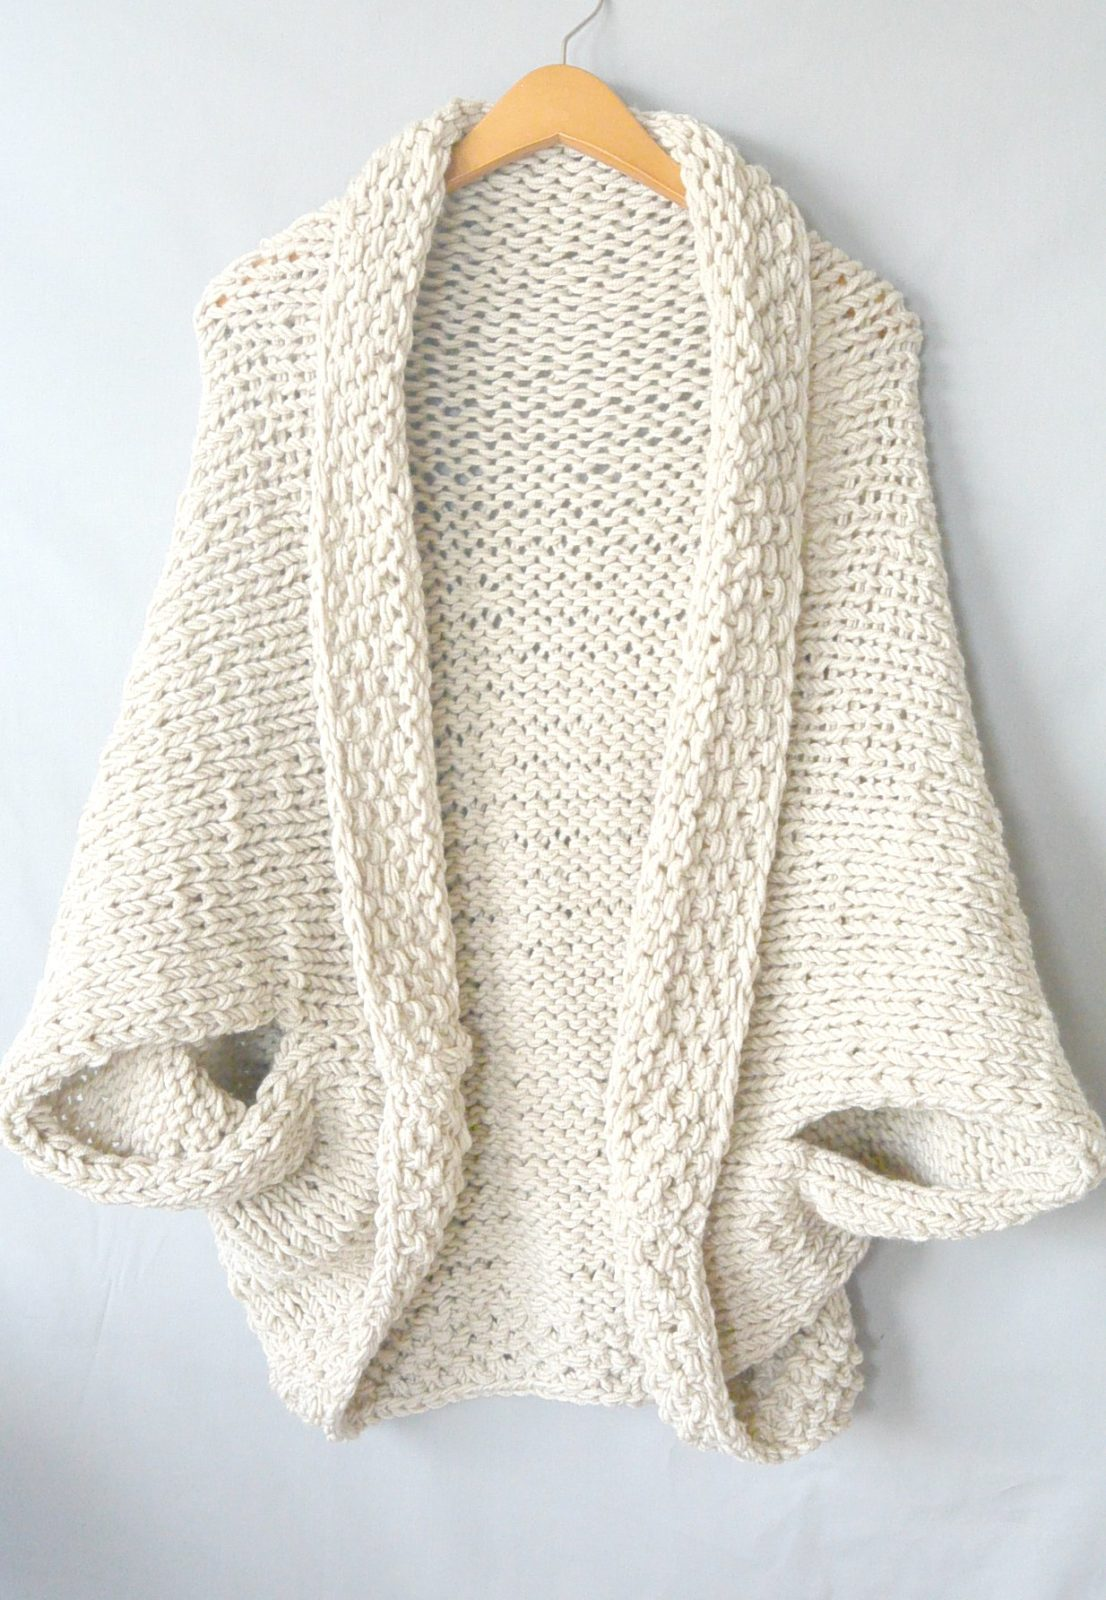 Knit A Sweater Easy : Easy sweater pattern knit cardigan with buttons